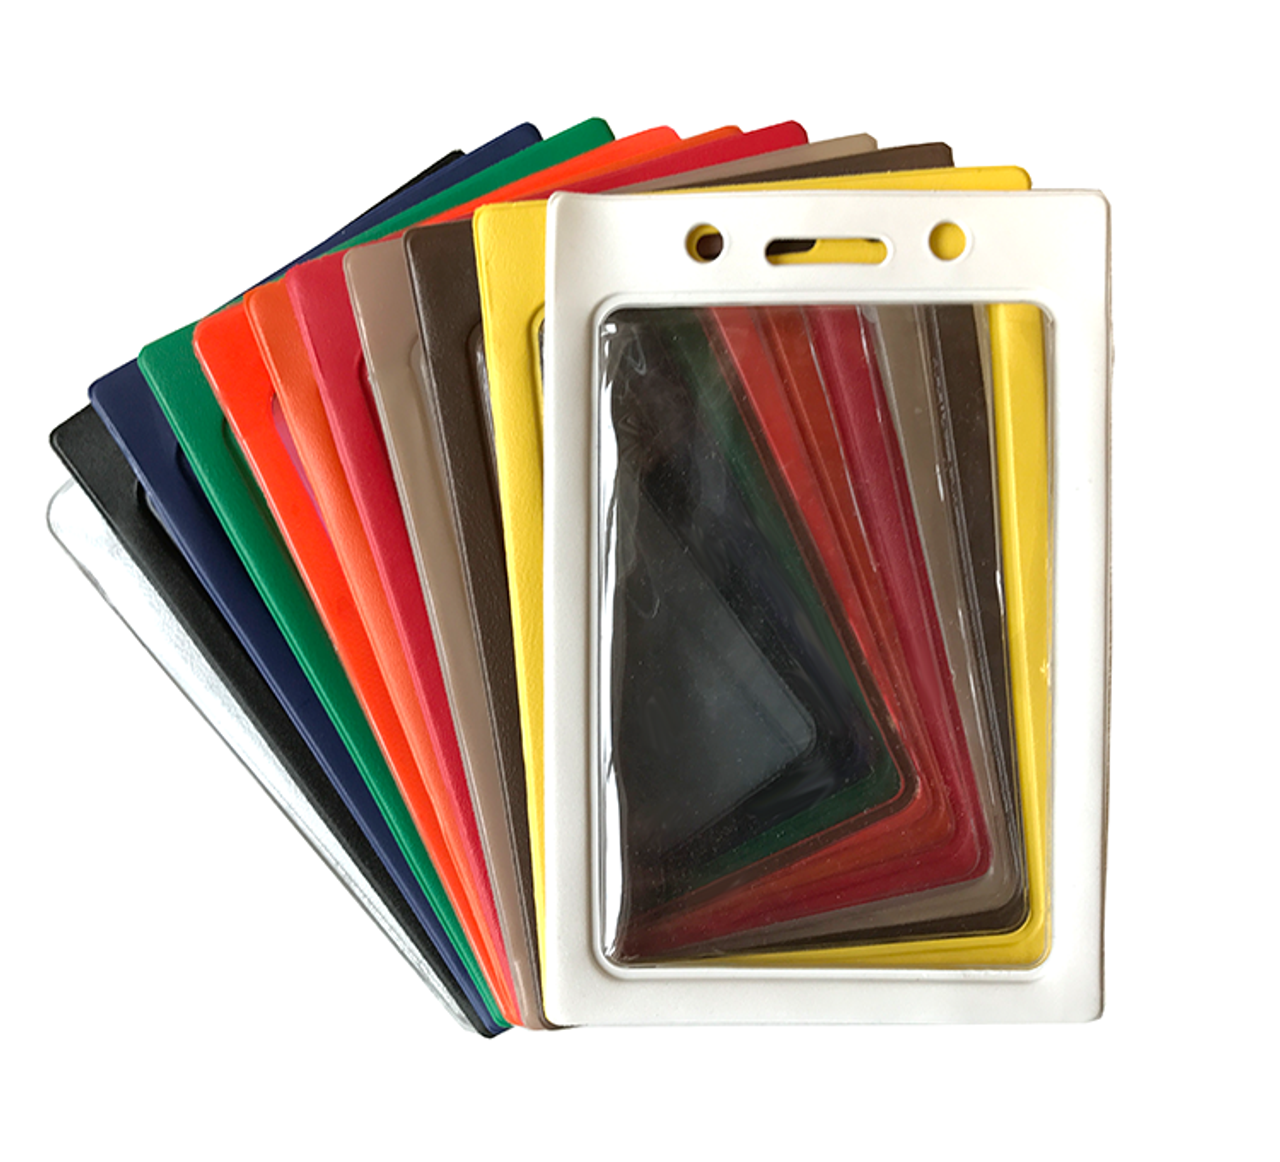 11 colors to choose from